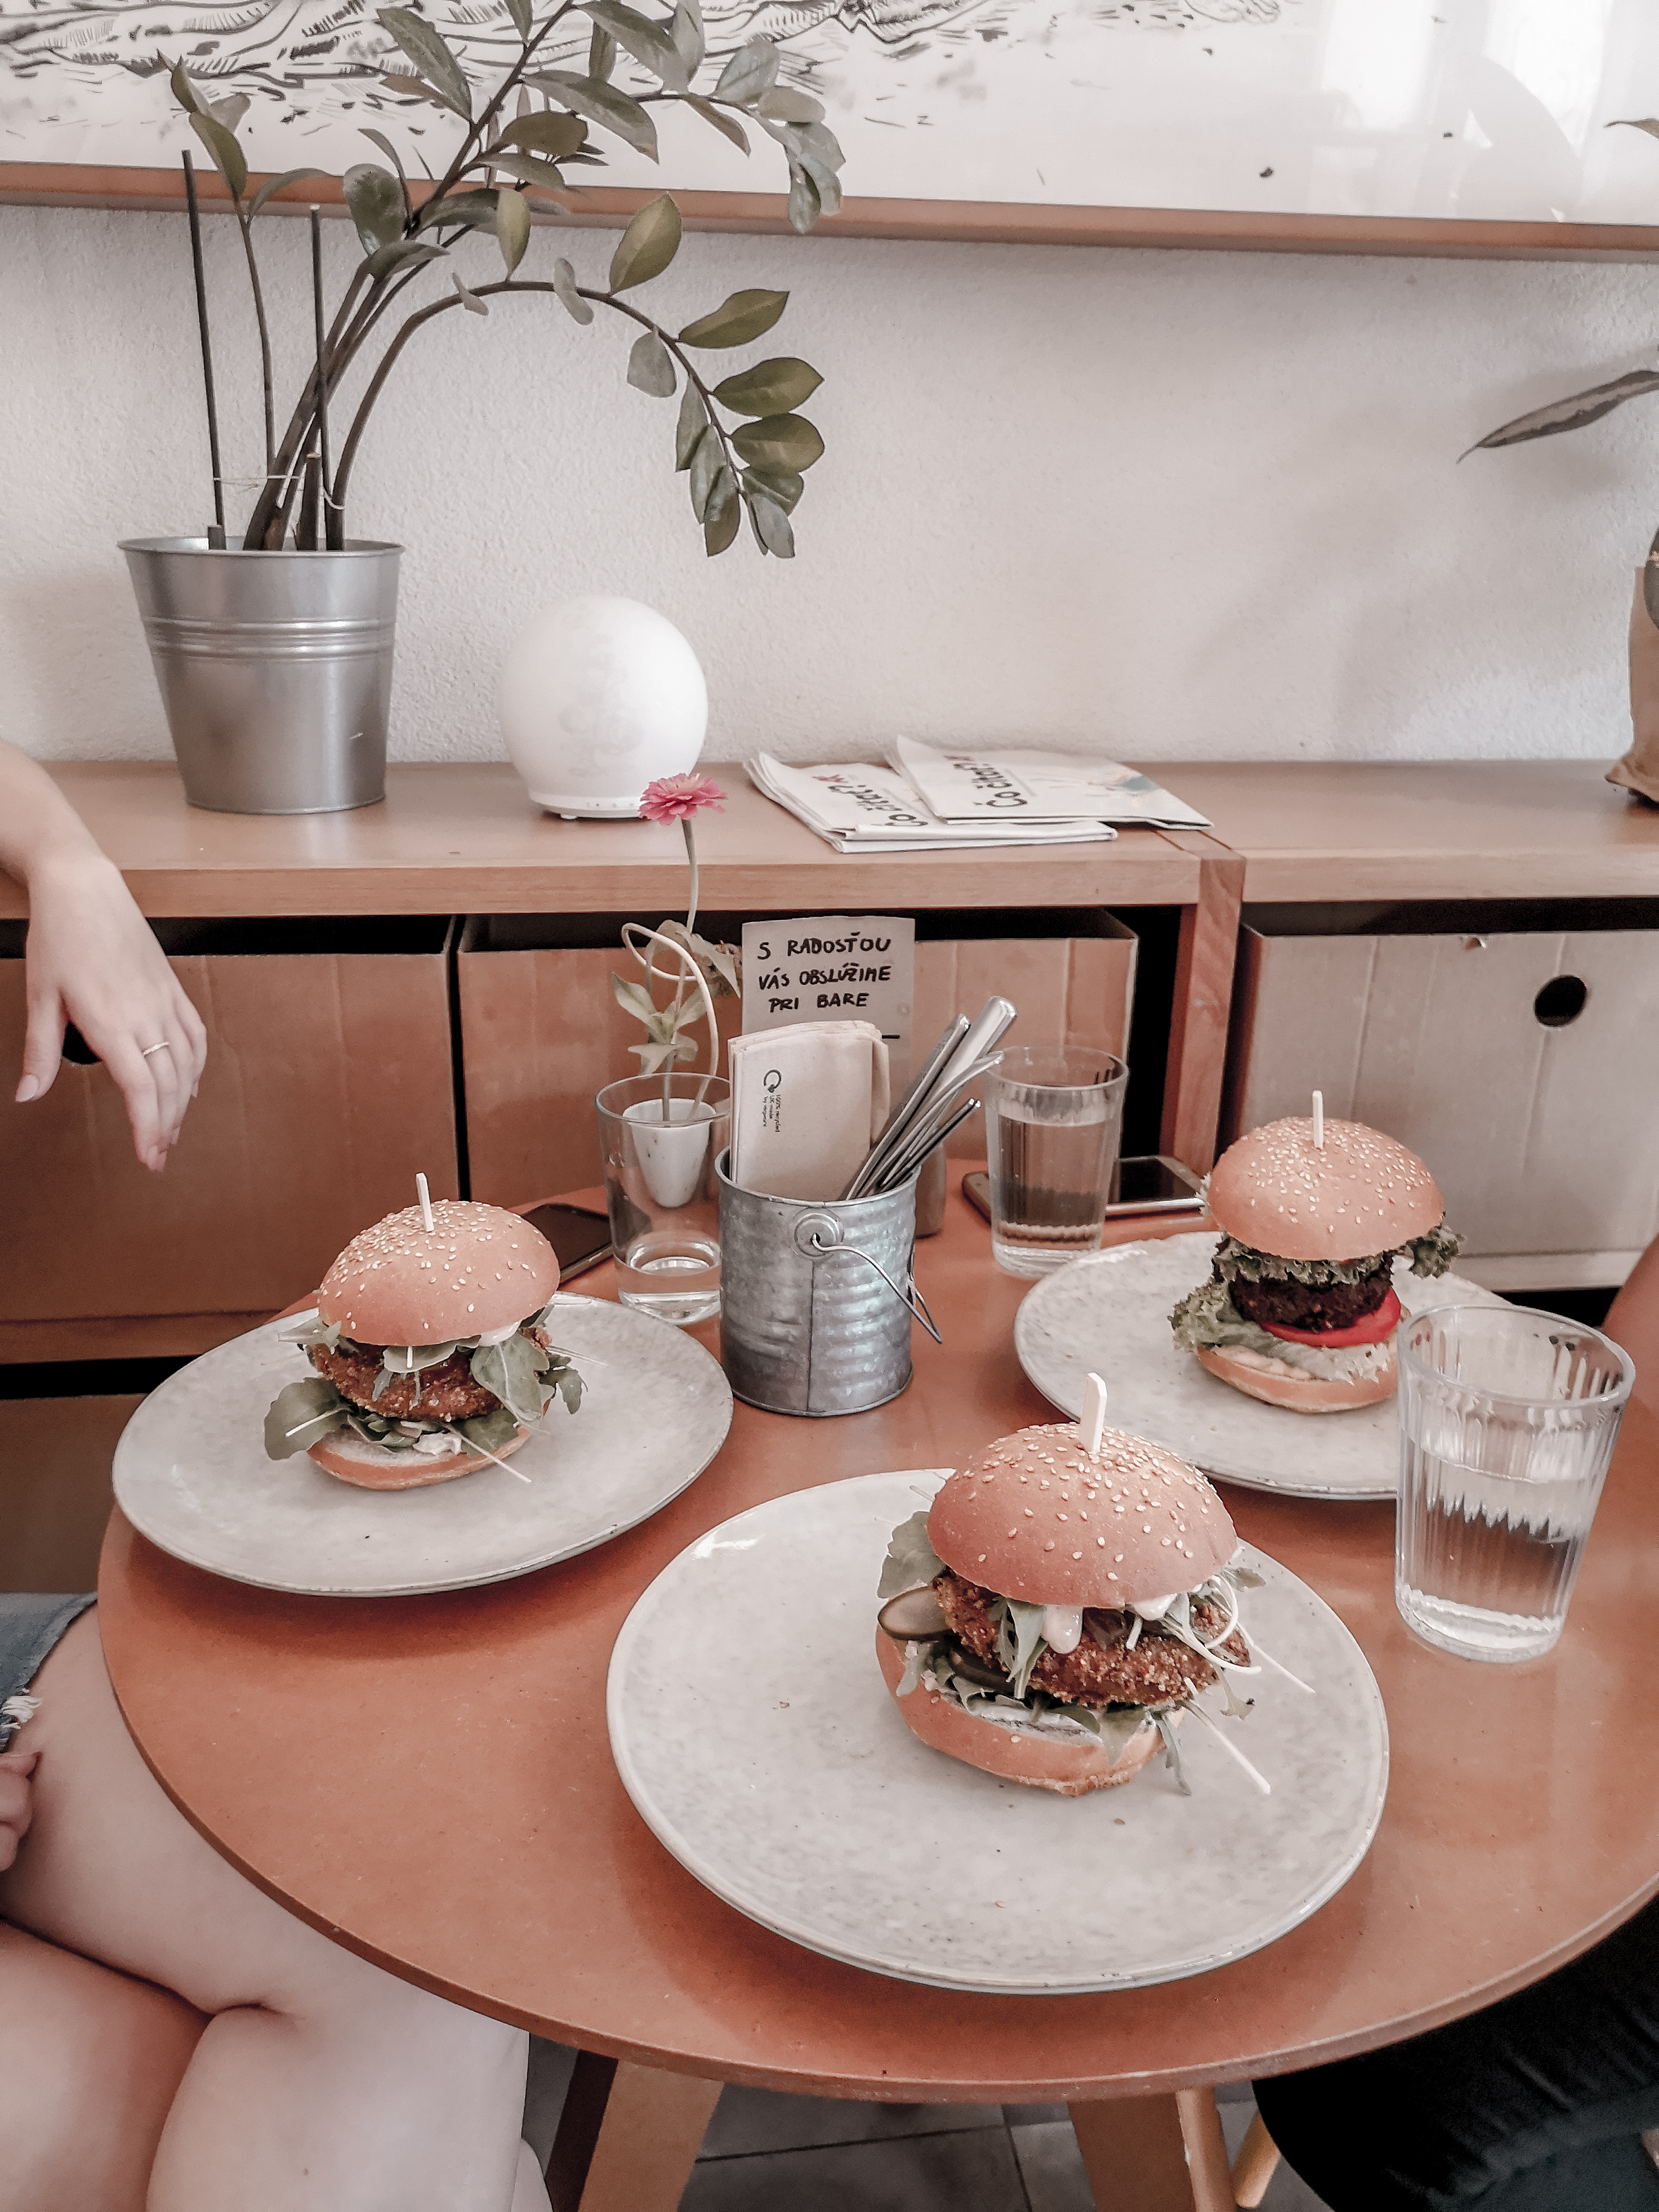 Vegan burgers in a small bistro.